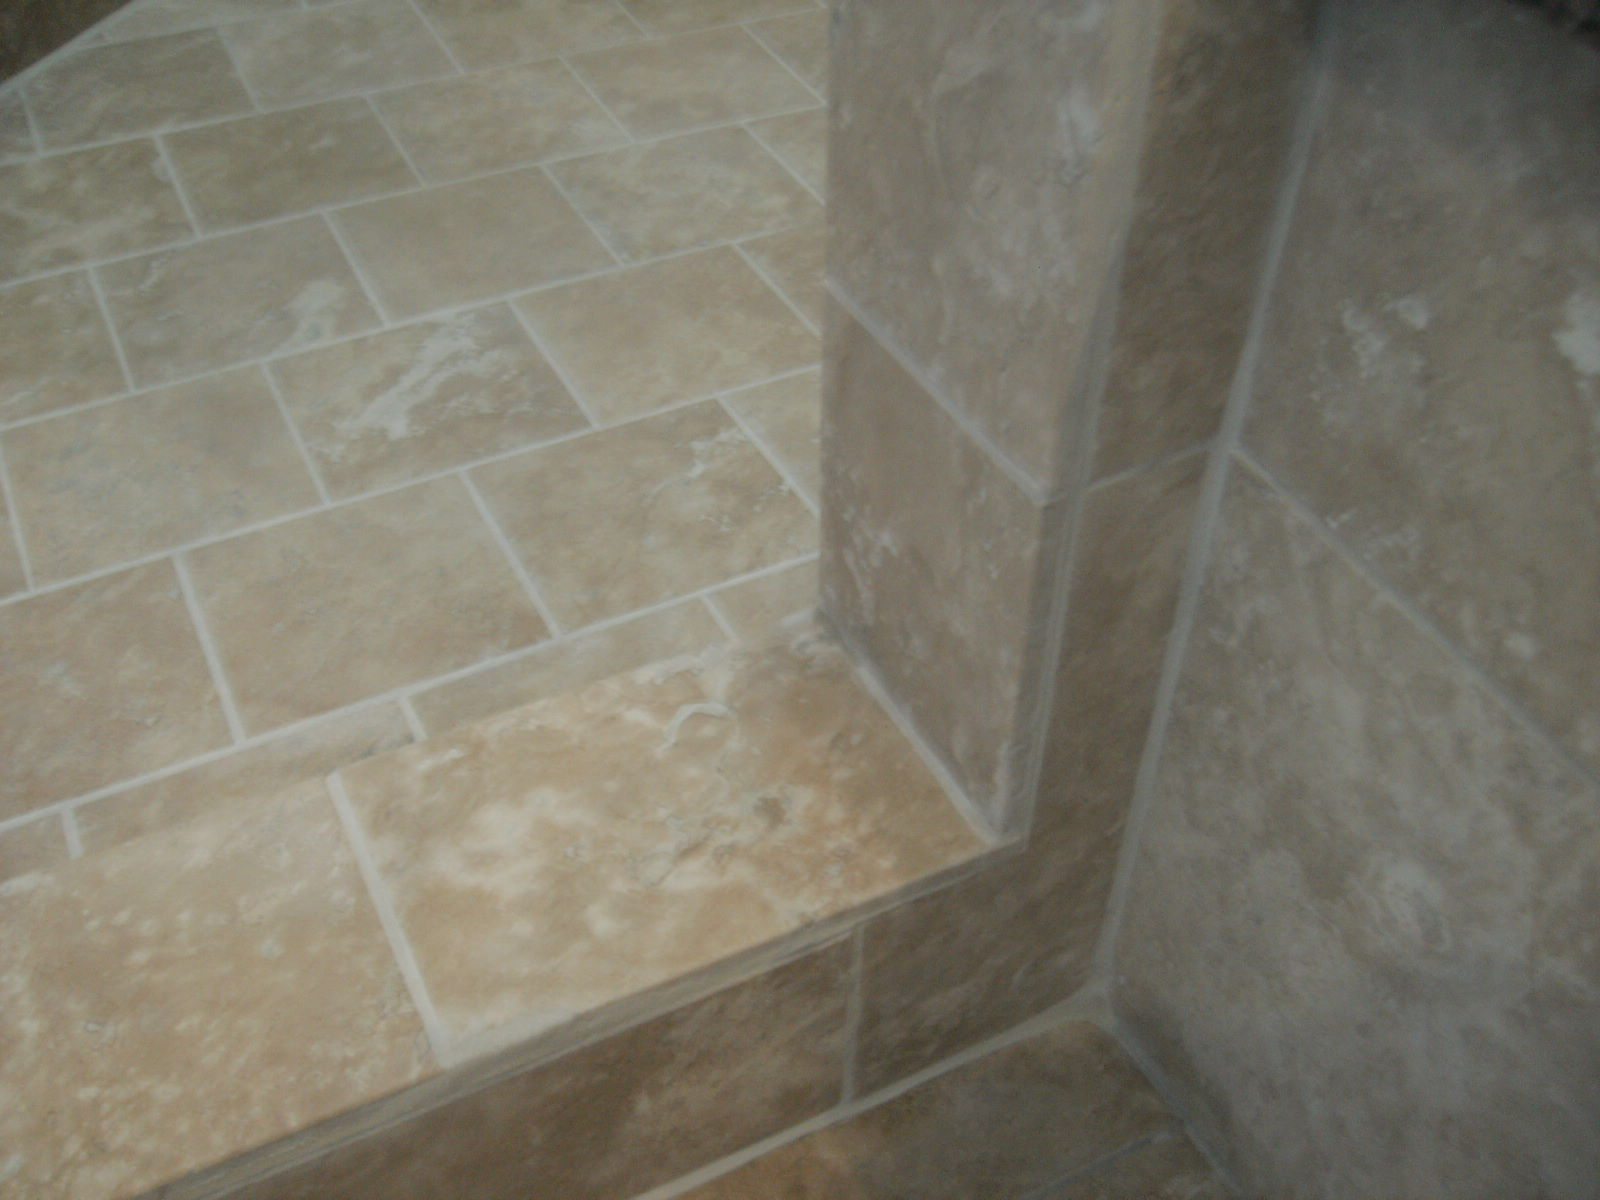 How to clean and maintain tile grout confessions of a tile setter how to clean and maintain tile grout dailygadgetfo Gallery